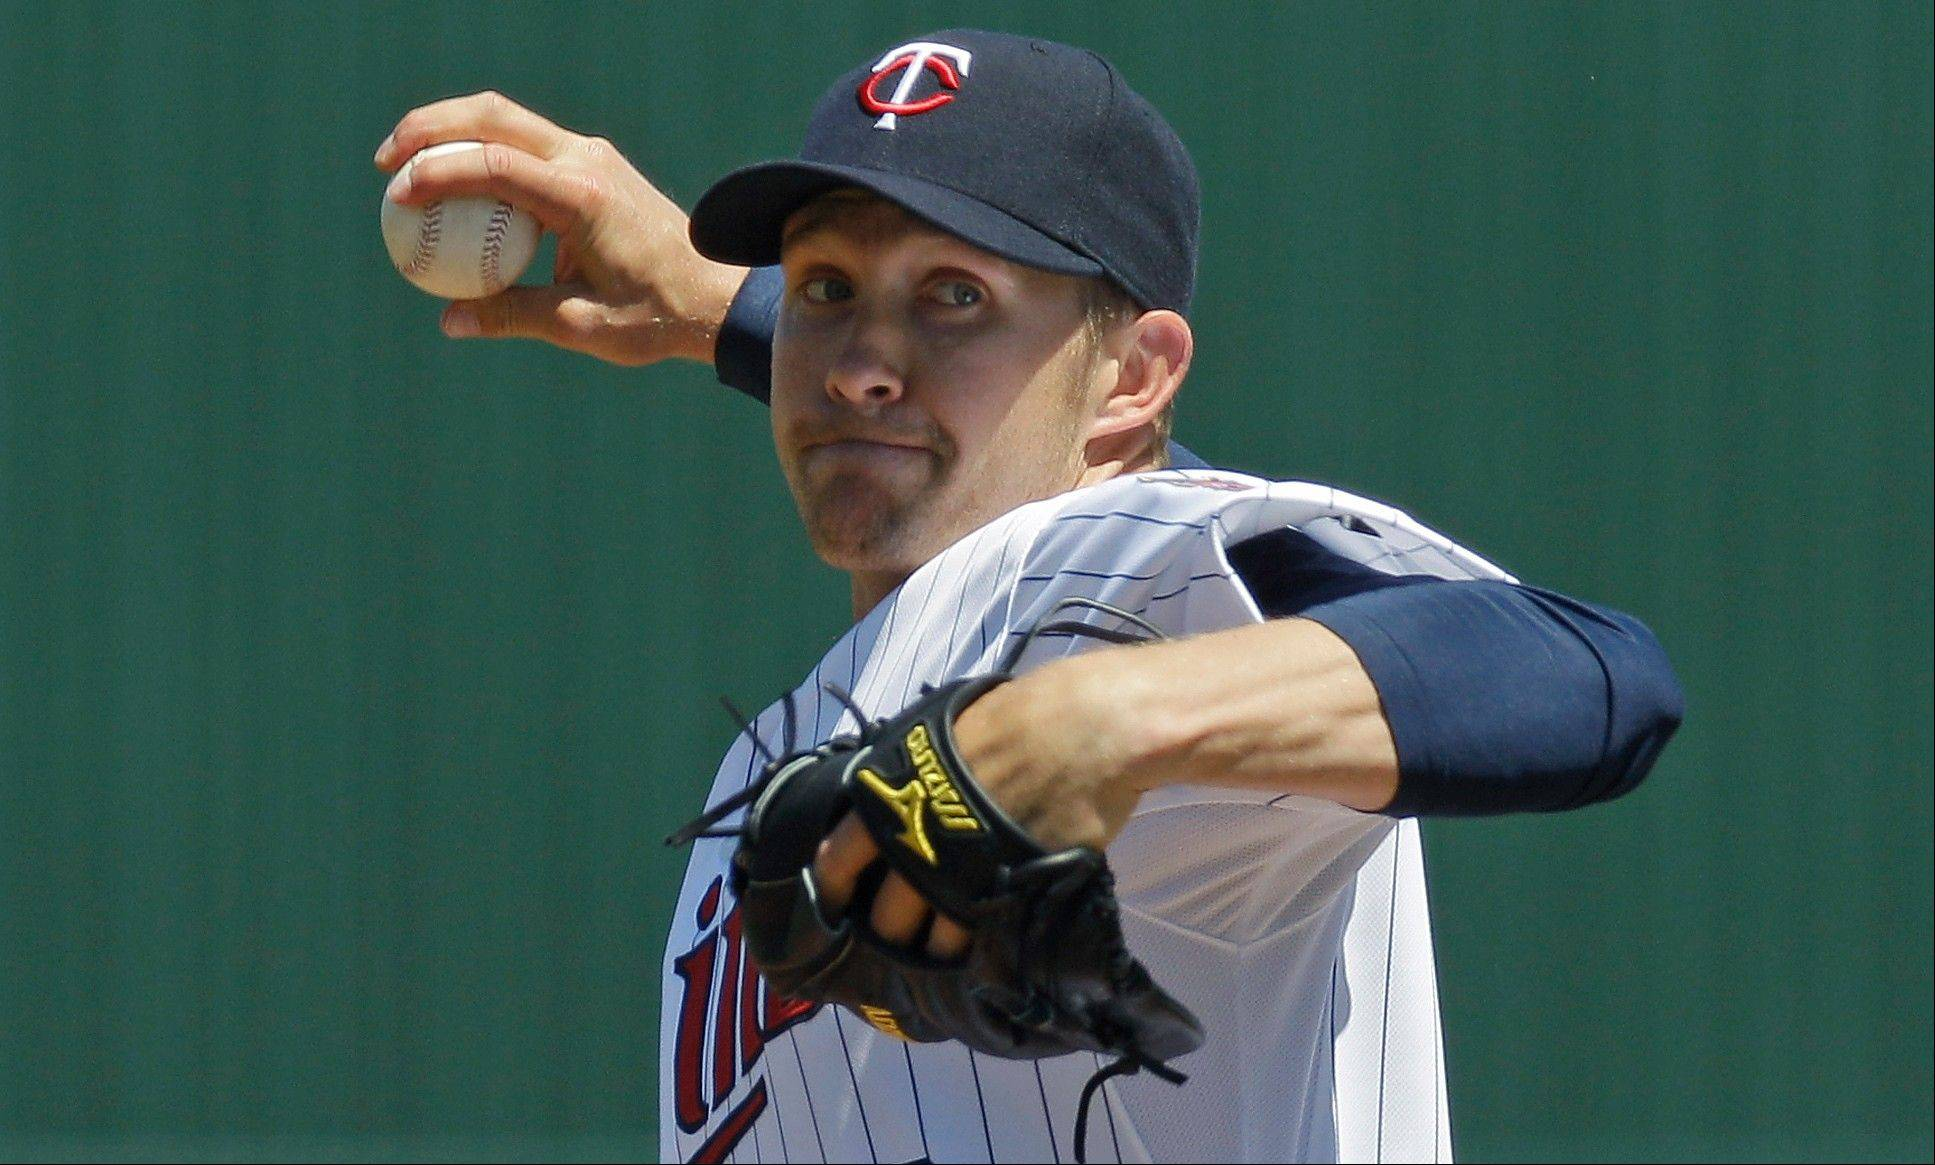 After a seven-year career with the Minnesota Twins that ended with Tommy John surgery on his right elbow last spring, starter Scott Baker has signed a one-year deal with the Cubs worth $5.5 million with incentives that could push it to $7 million.